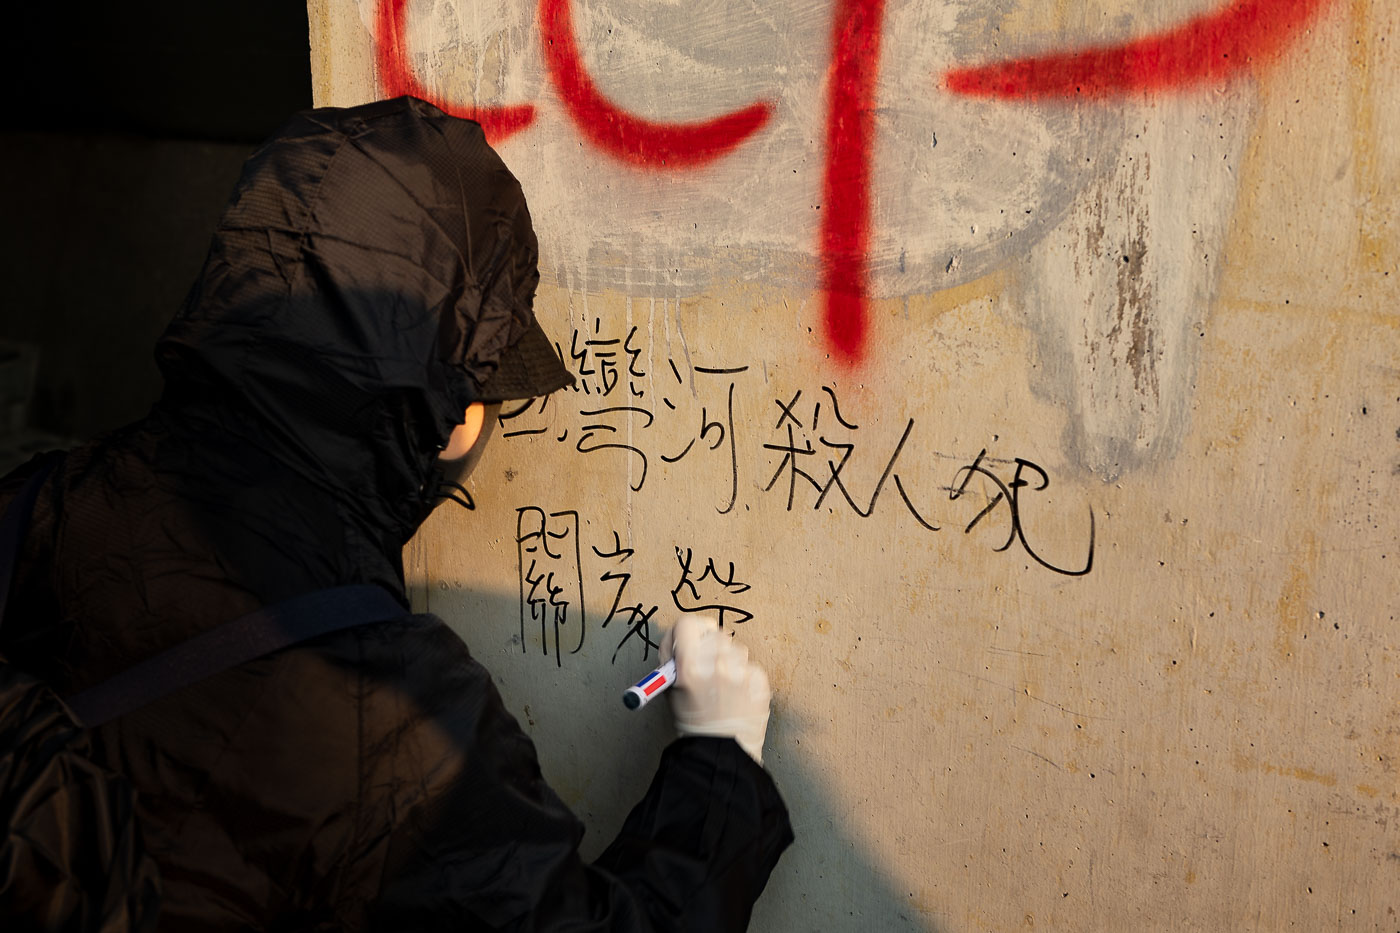 Black-clad protester writes a slogan in felt pen on a wall during Hong Kong protest march.